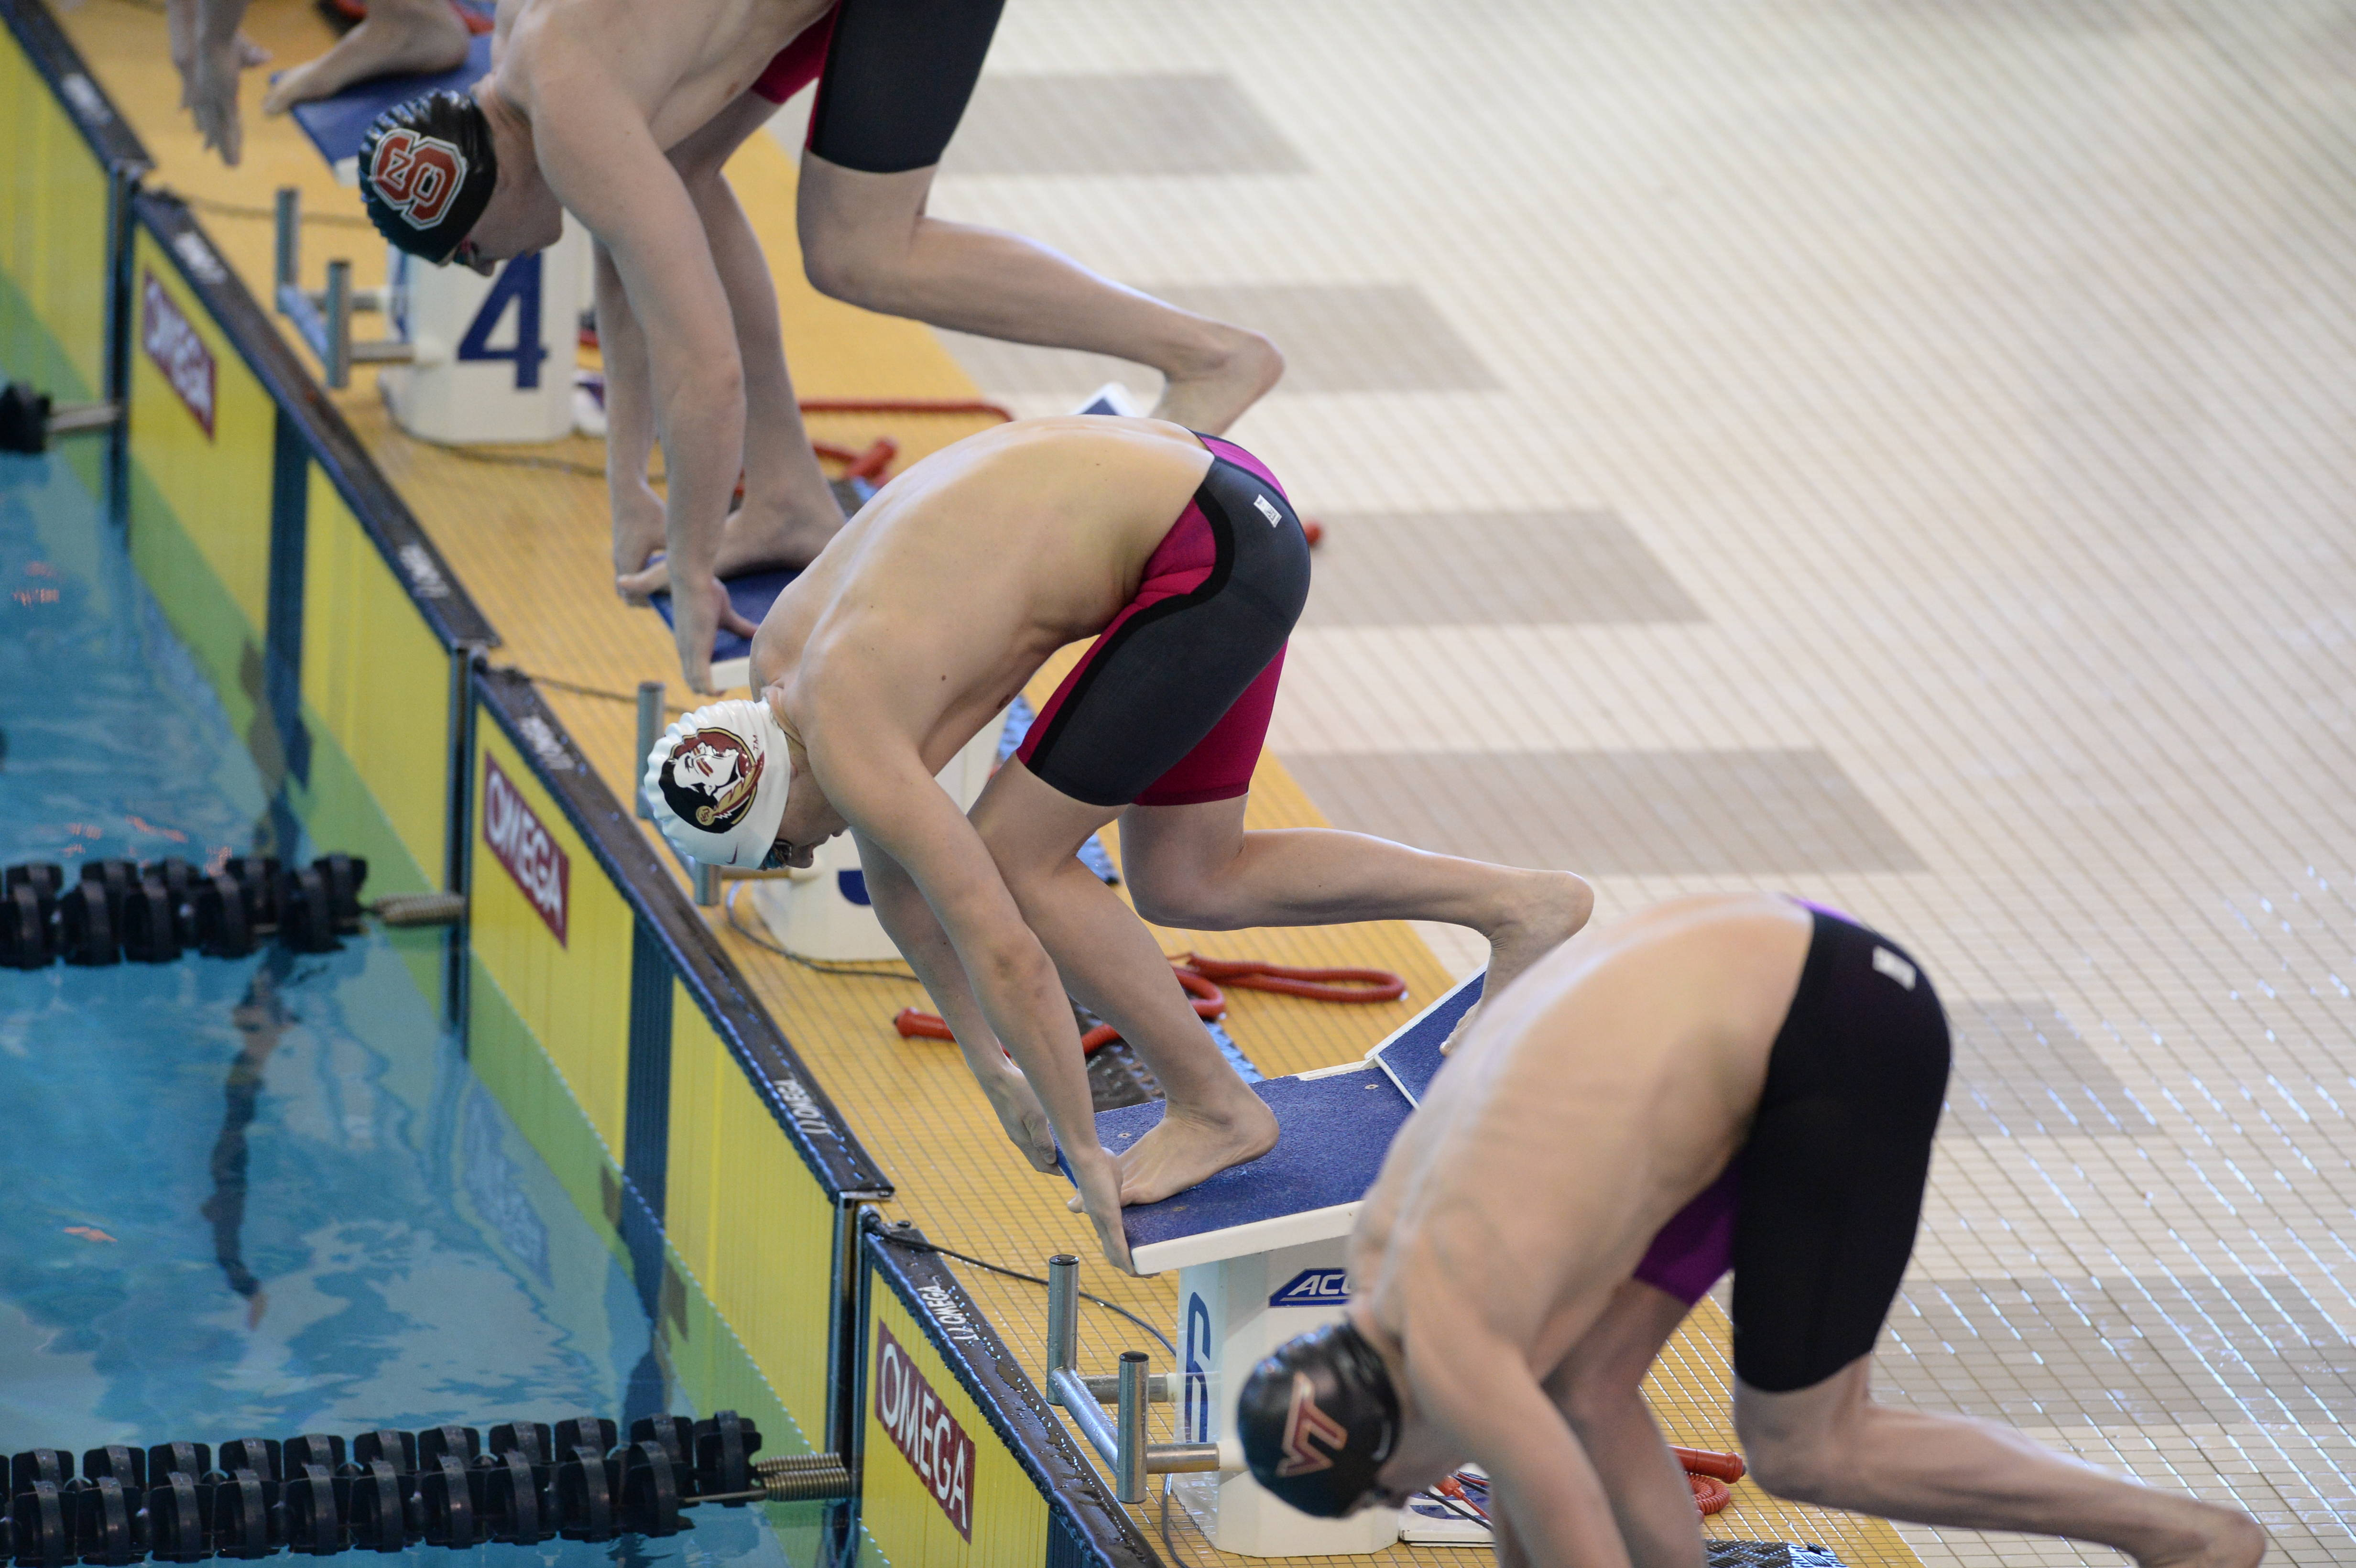 Kevin Rogers gets off the blocks in the 200 free - Mitch White